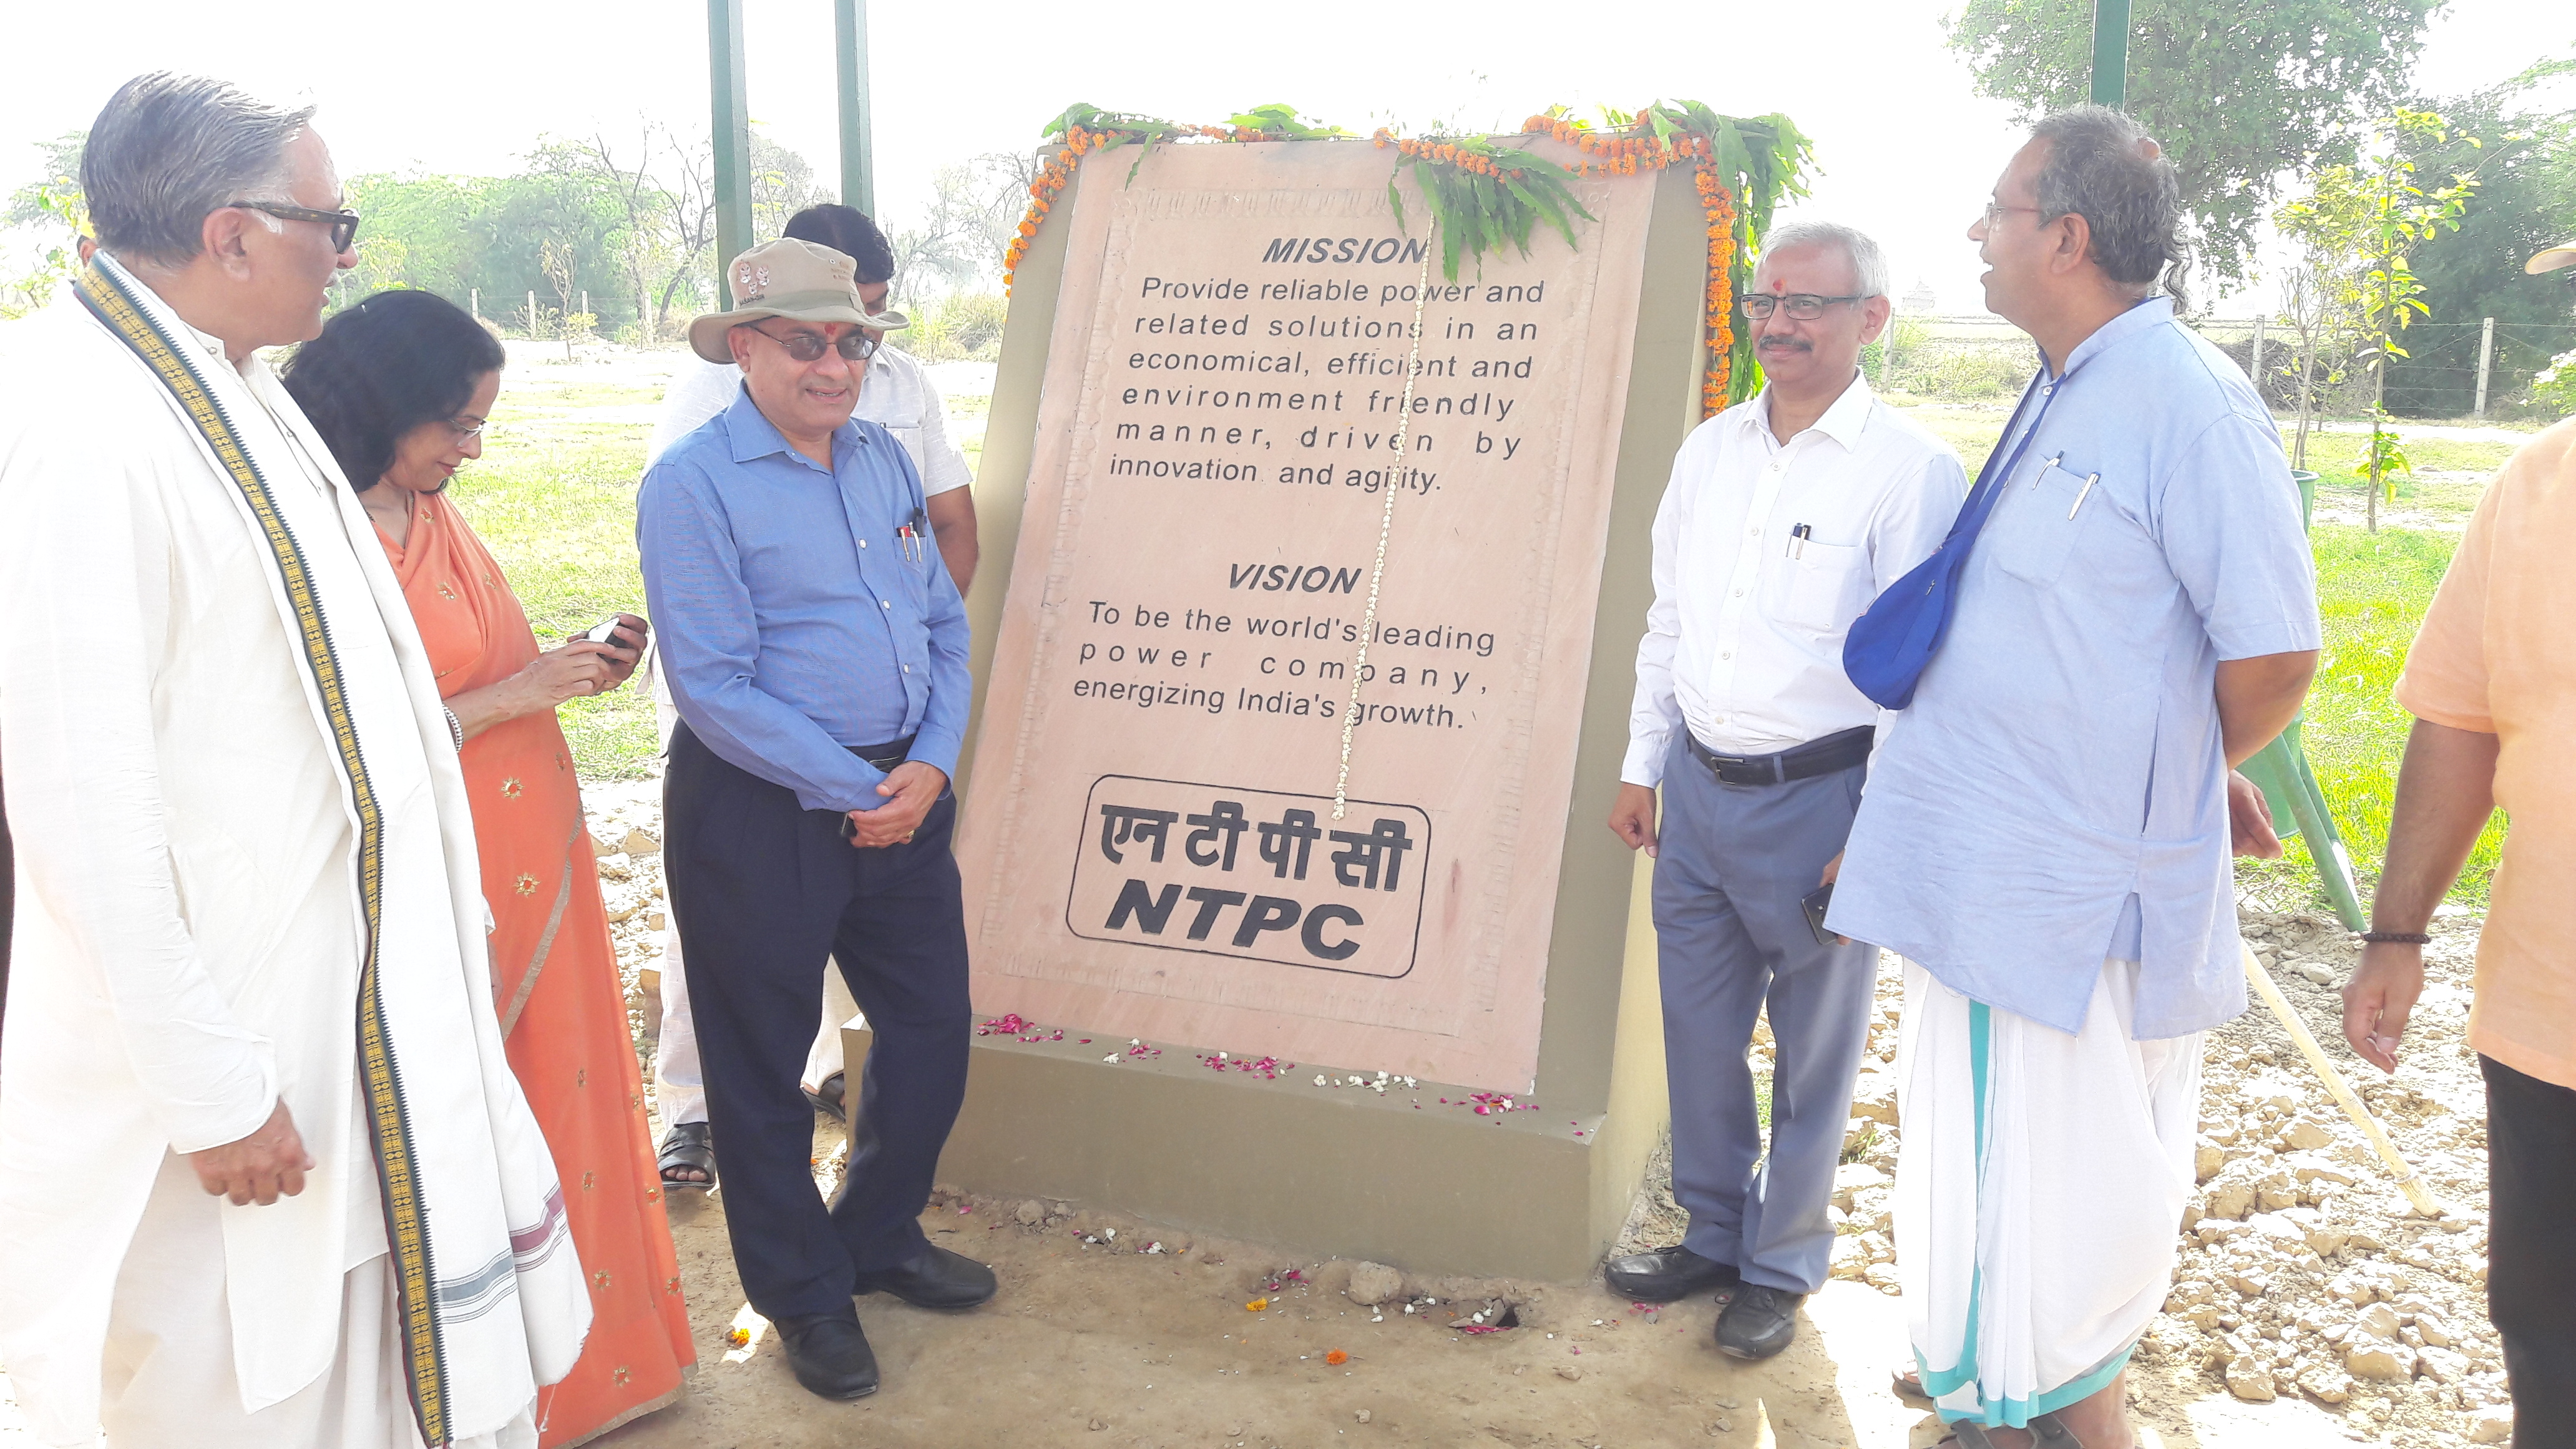 NTPC Executive Director Mr. D K Sood inaugurating first phase of Brahm Van